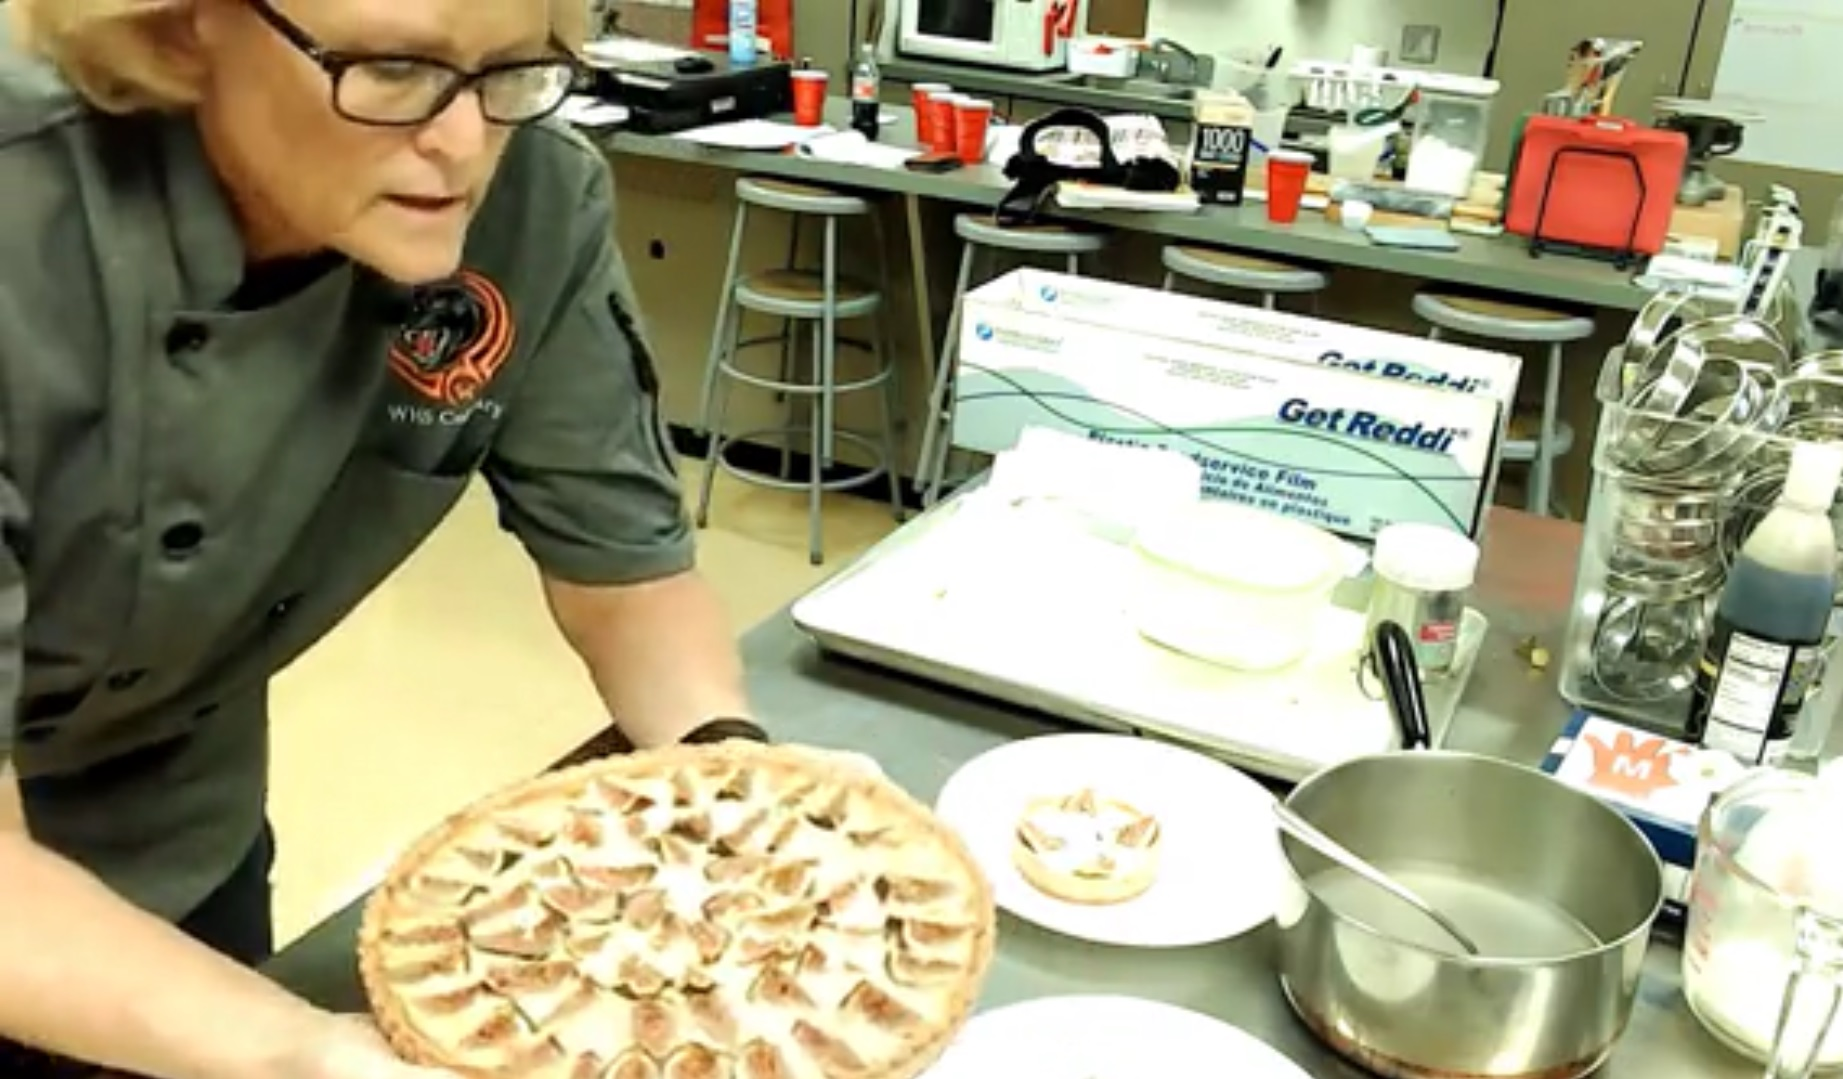 Brenda working on a fig tart, with ingredients on the prep surface behind and around her